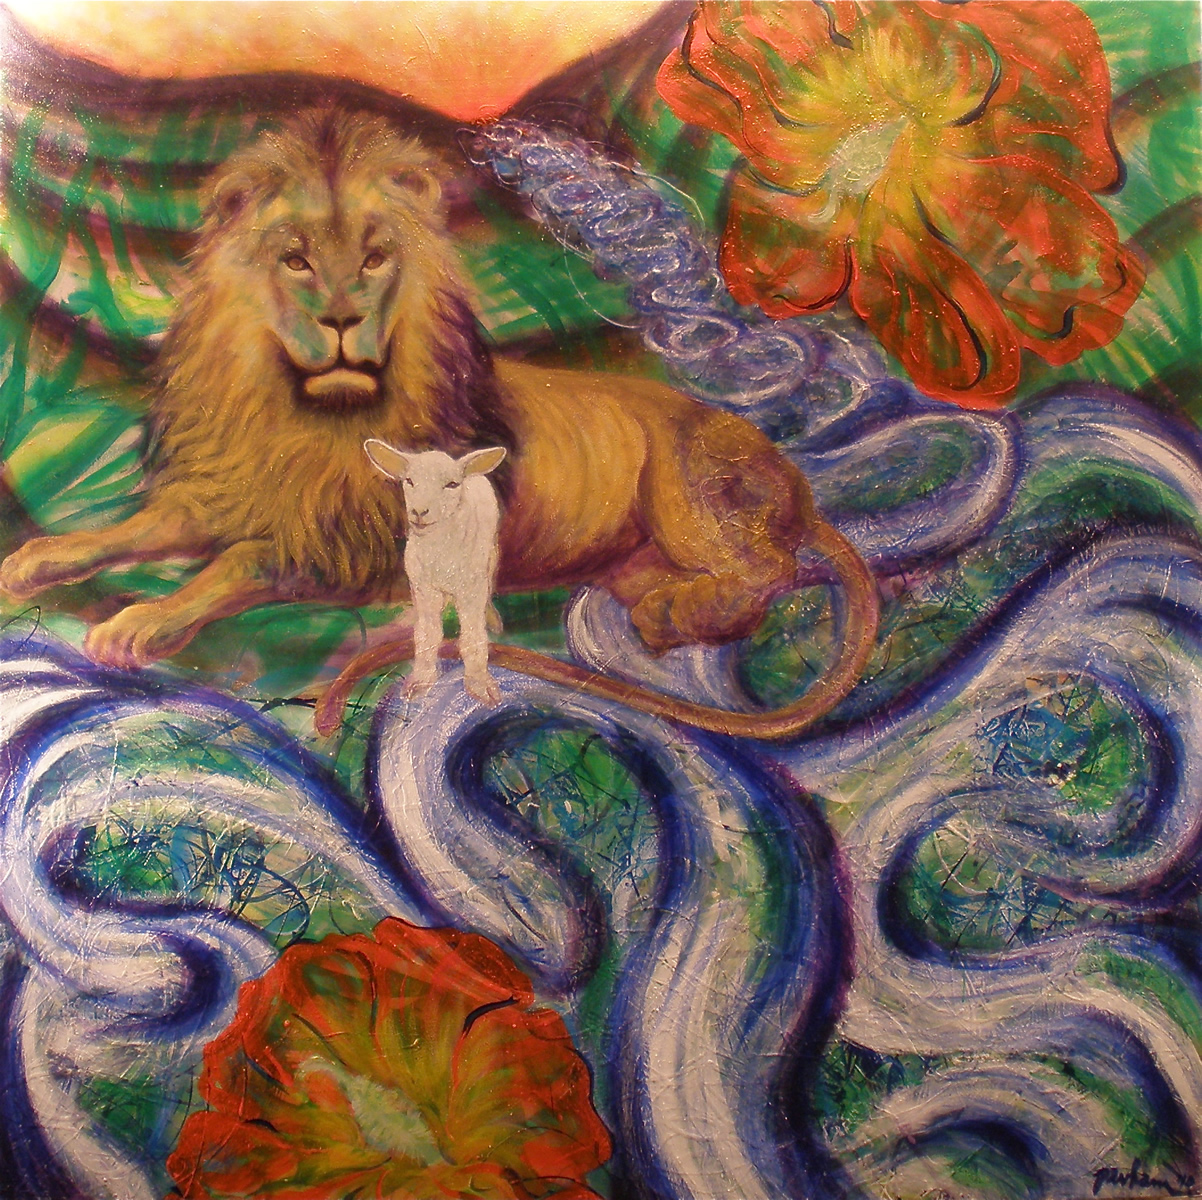 The Peaceable Kingdom and River of Life